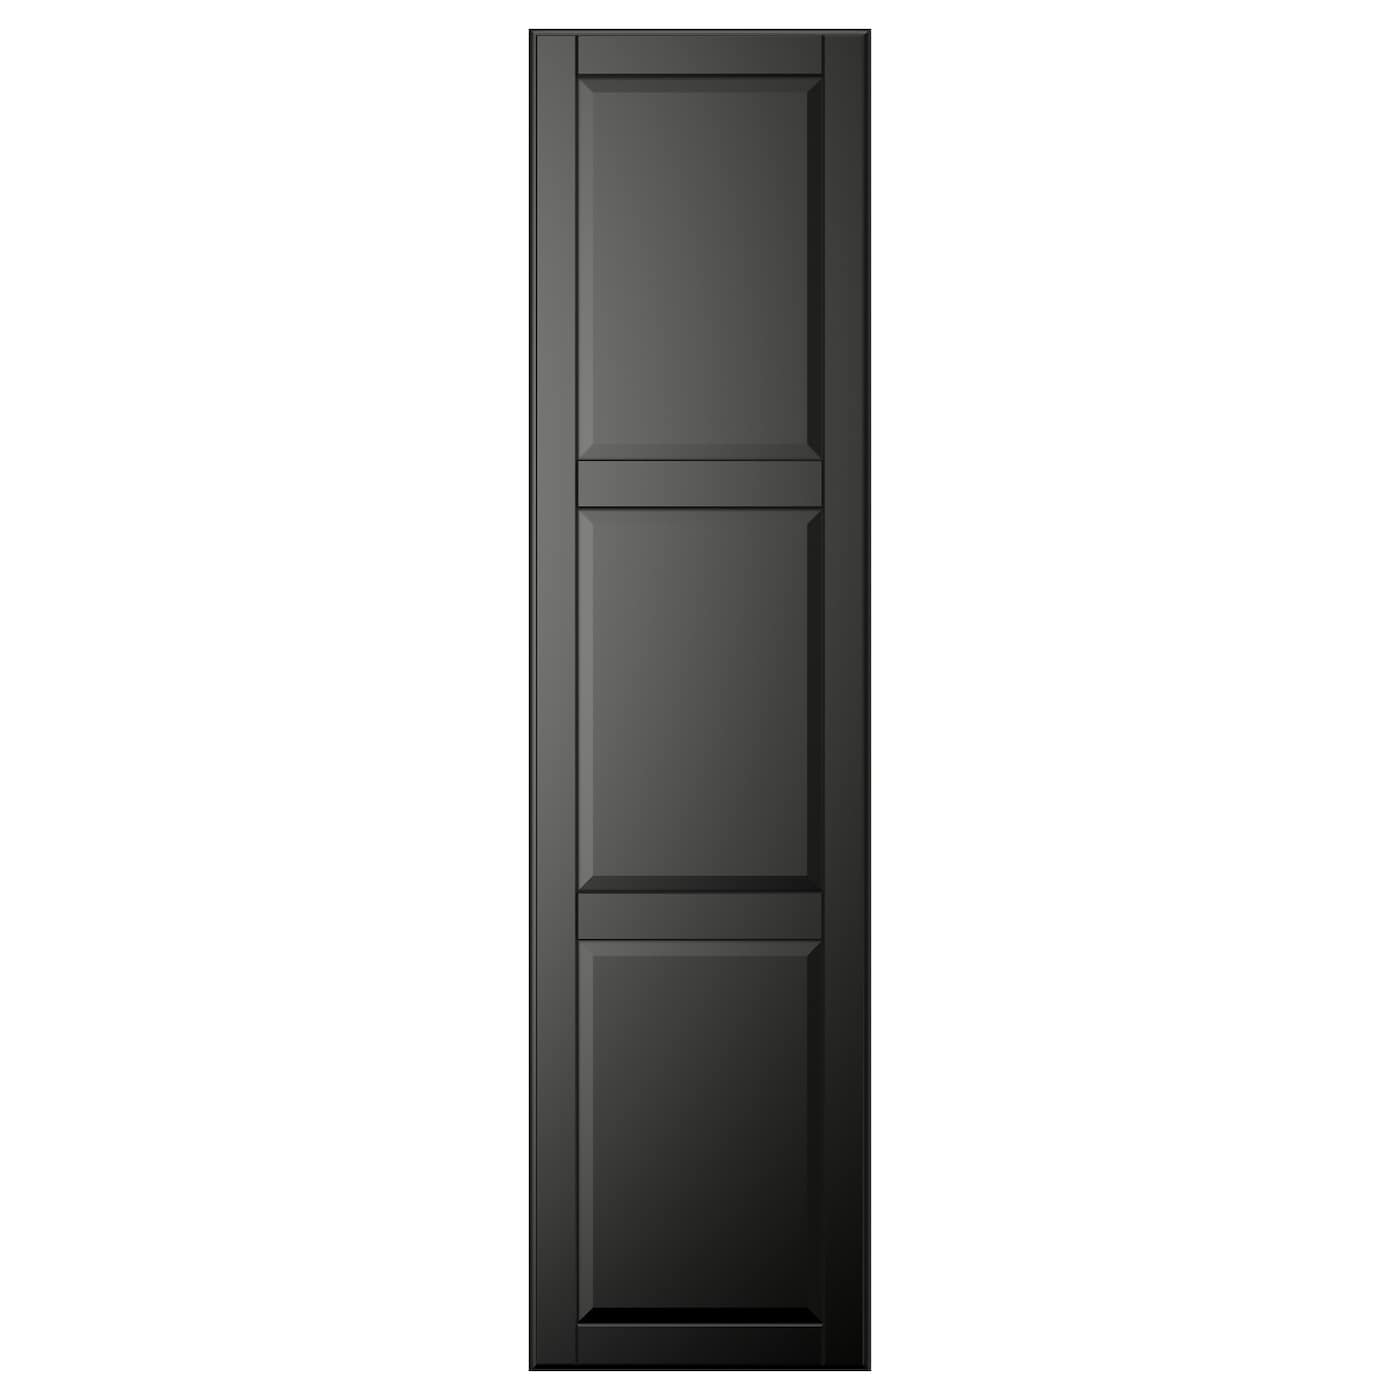 undredal porte noir 50 x 195 cm ikea. Black Bedroom Furniture Sets. Home Design Ideas